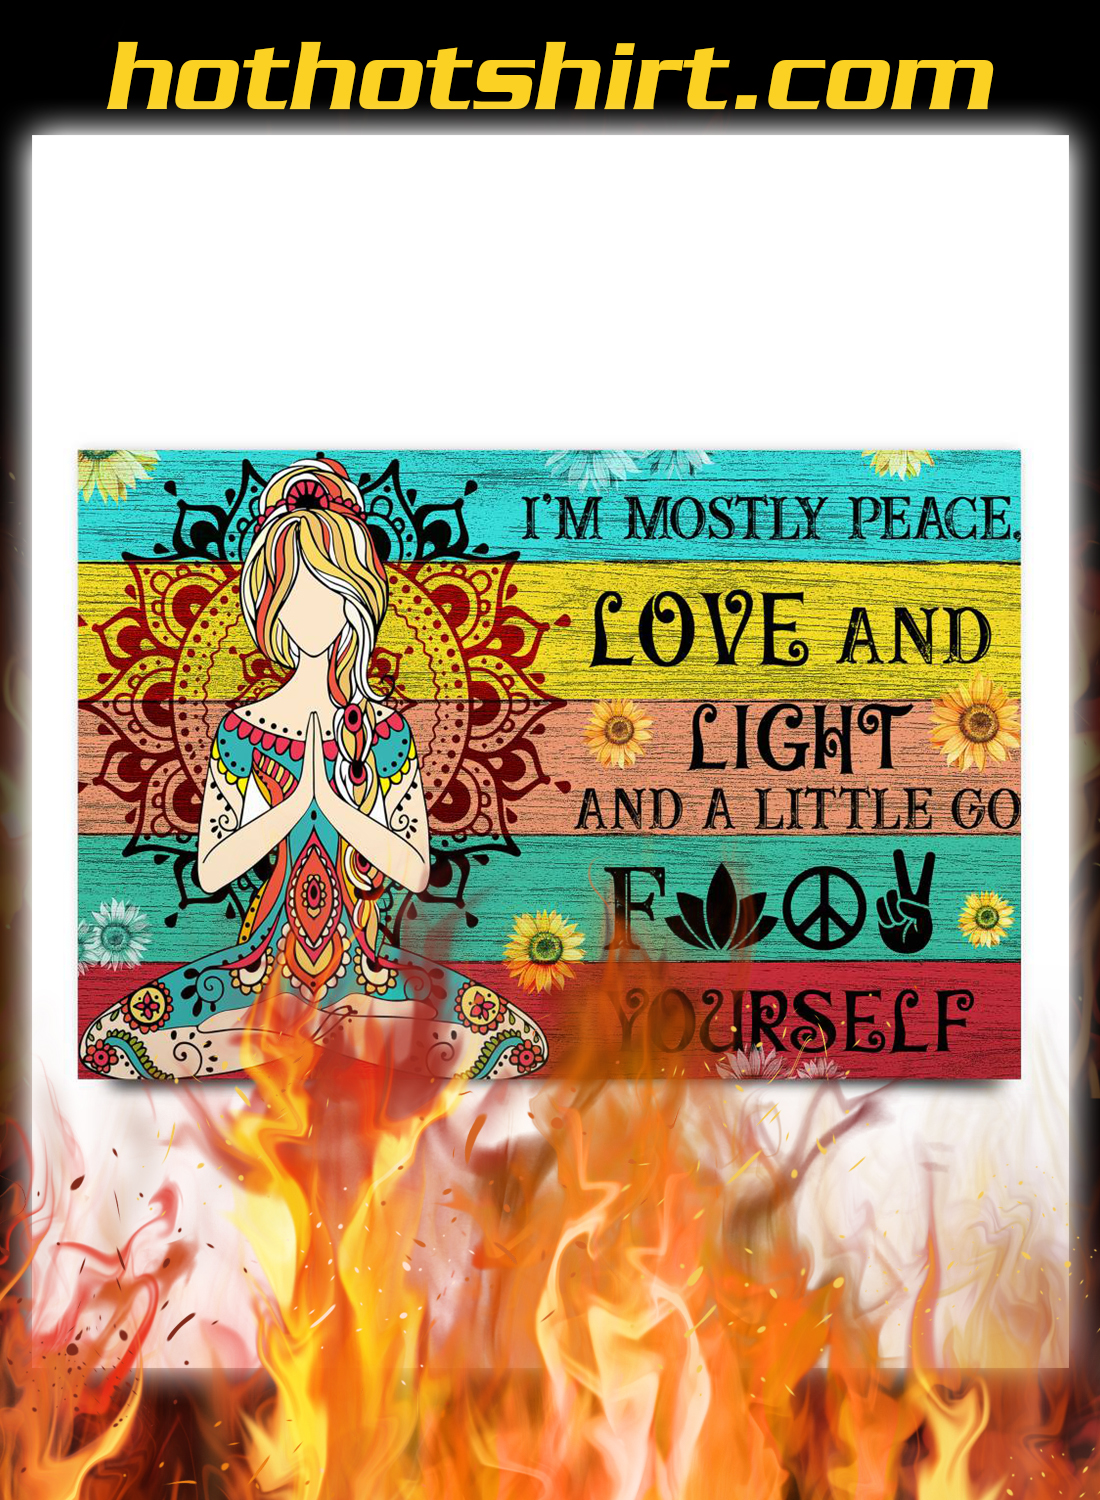 Yoga i'm mostly peace love and light and a little go fuck yourself poster A3